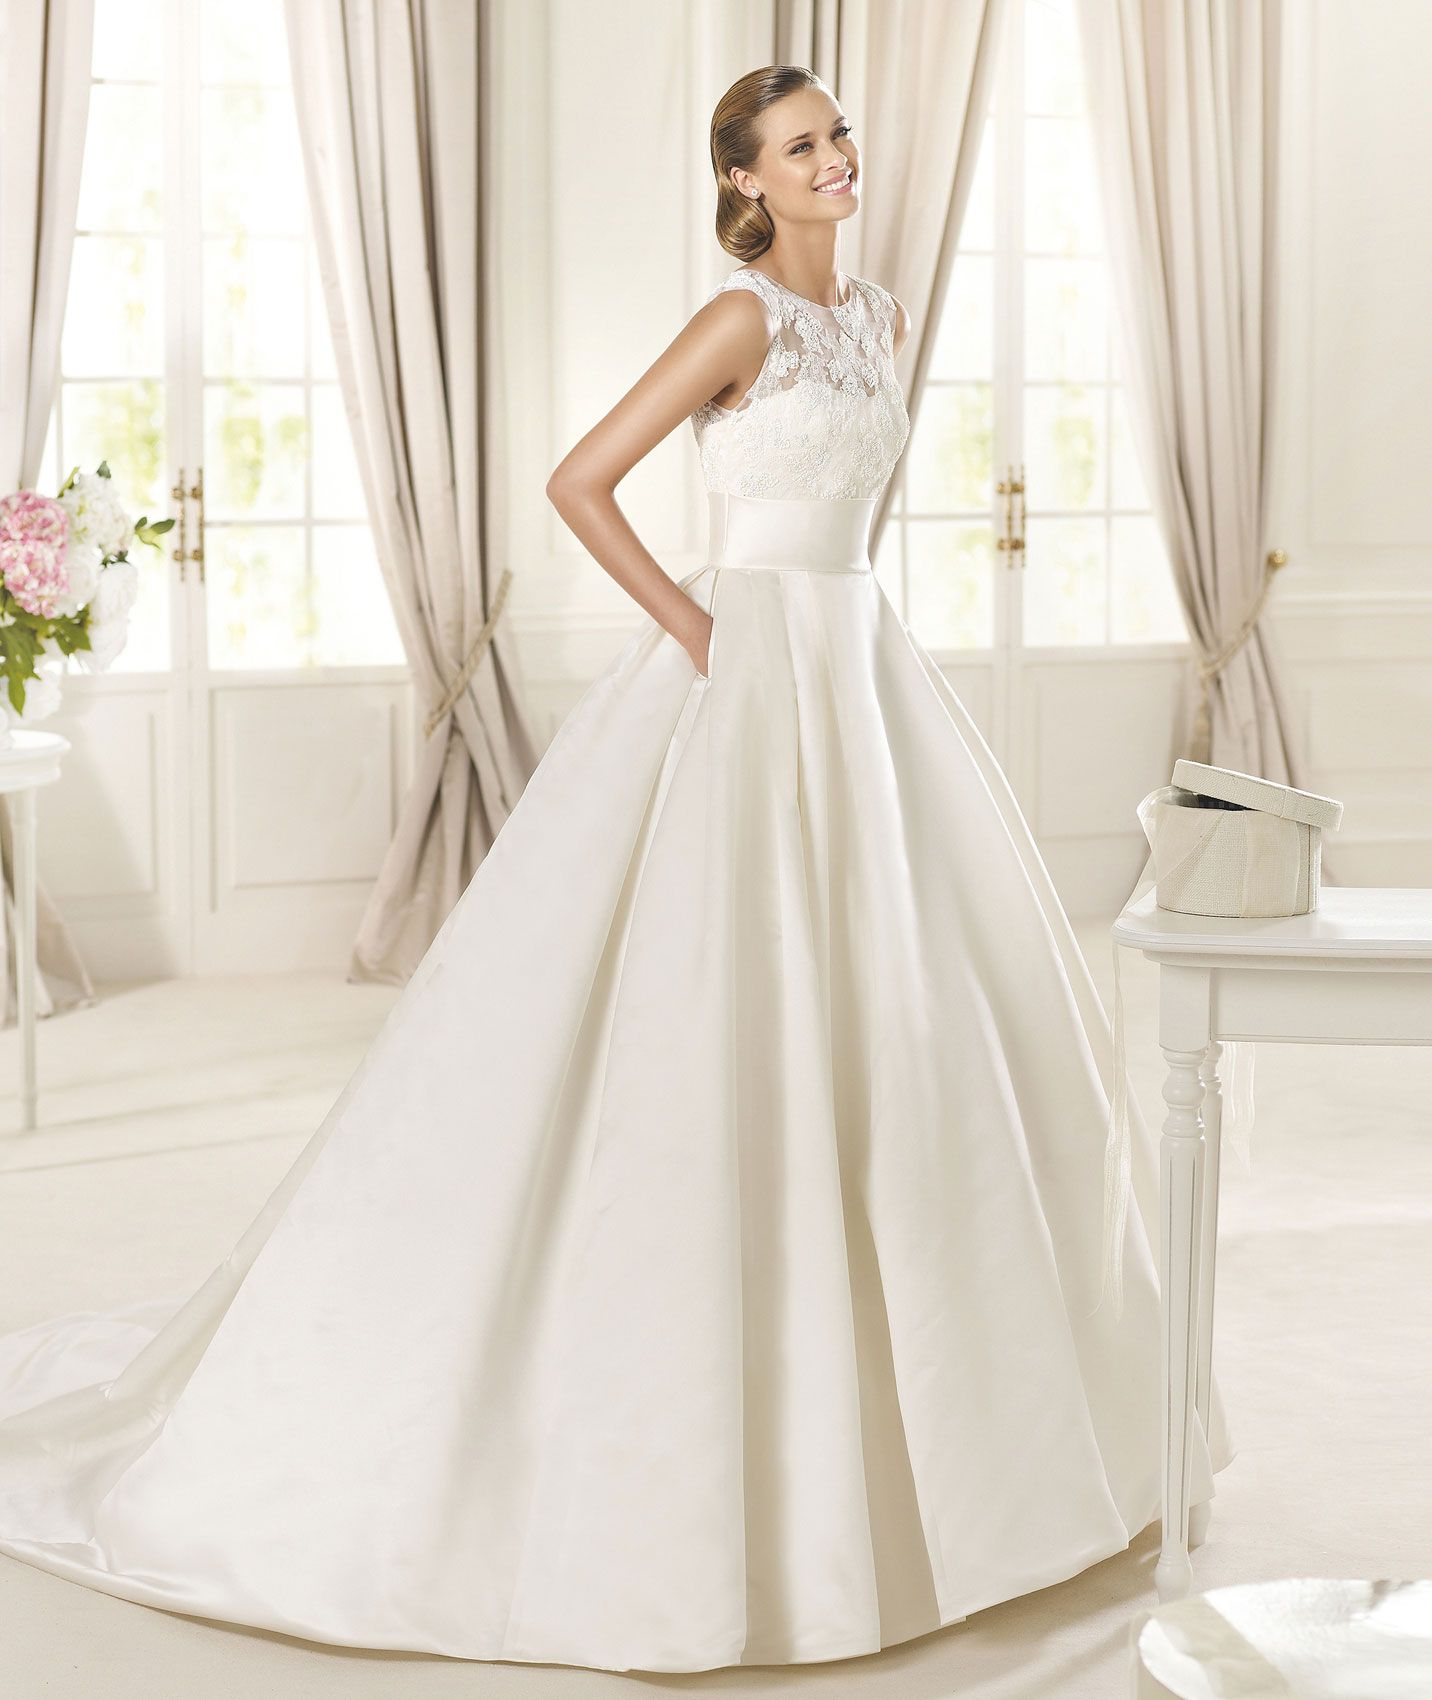 Bridal dress. Dalia Model. Collection Costura 2015. Pronovias 2015 ...